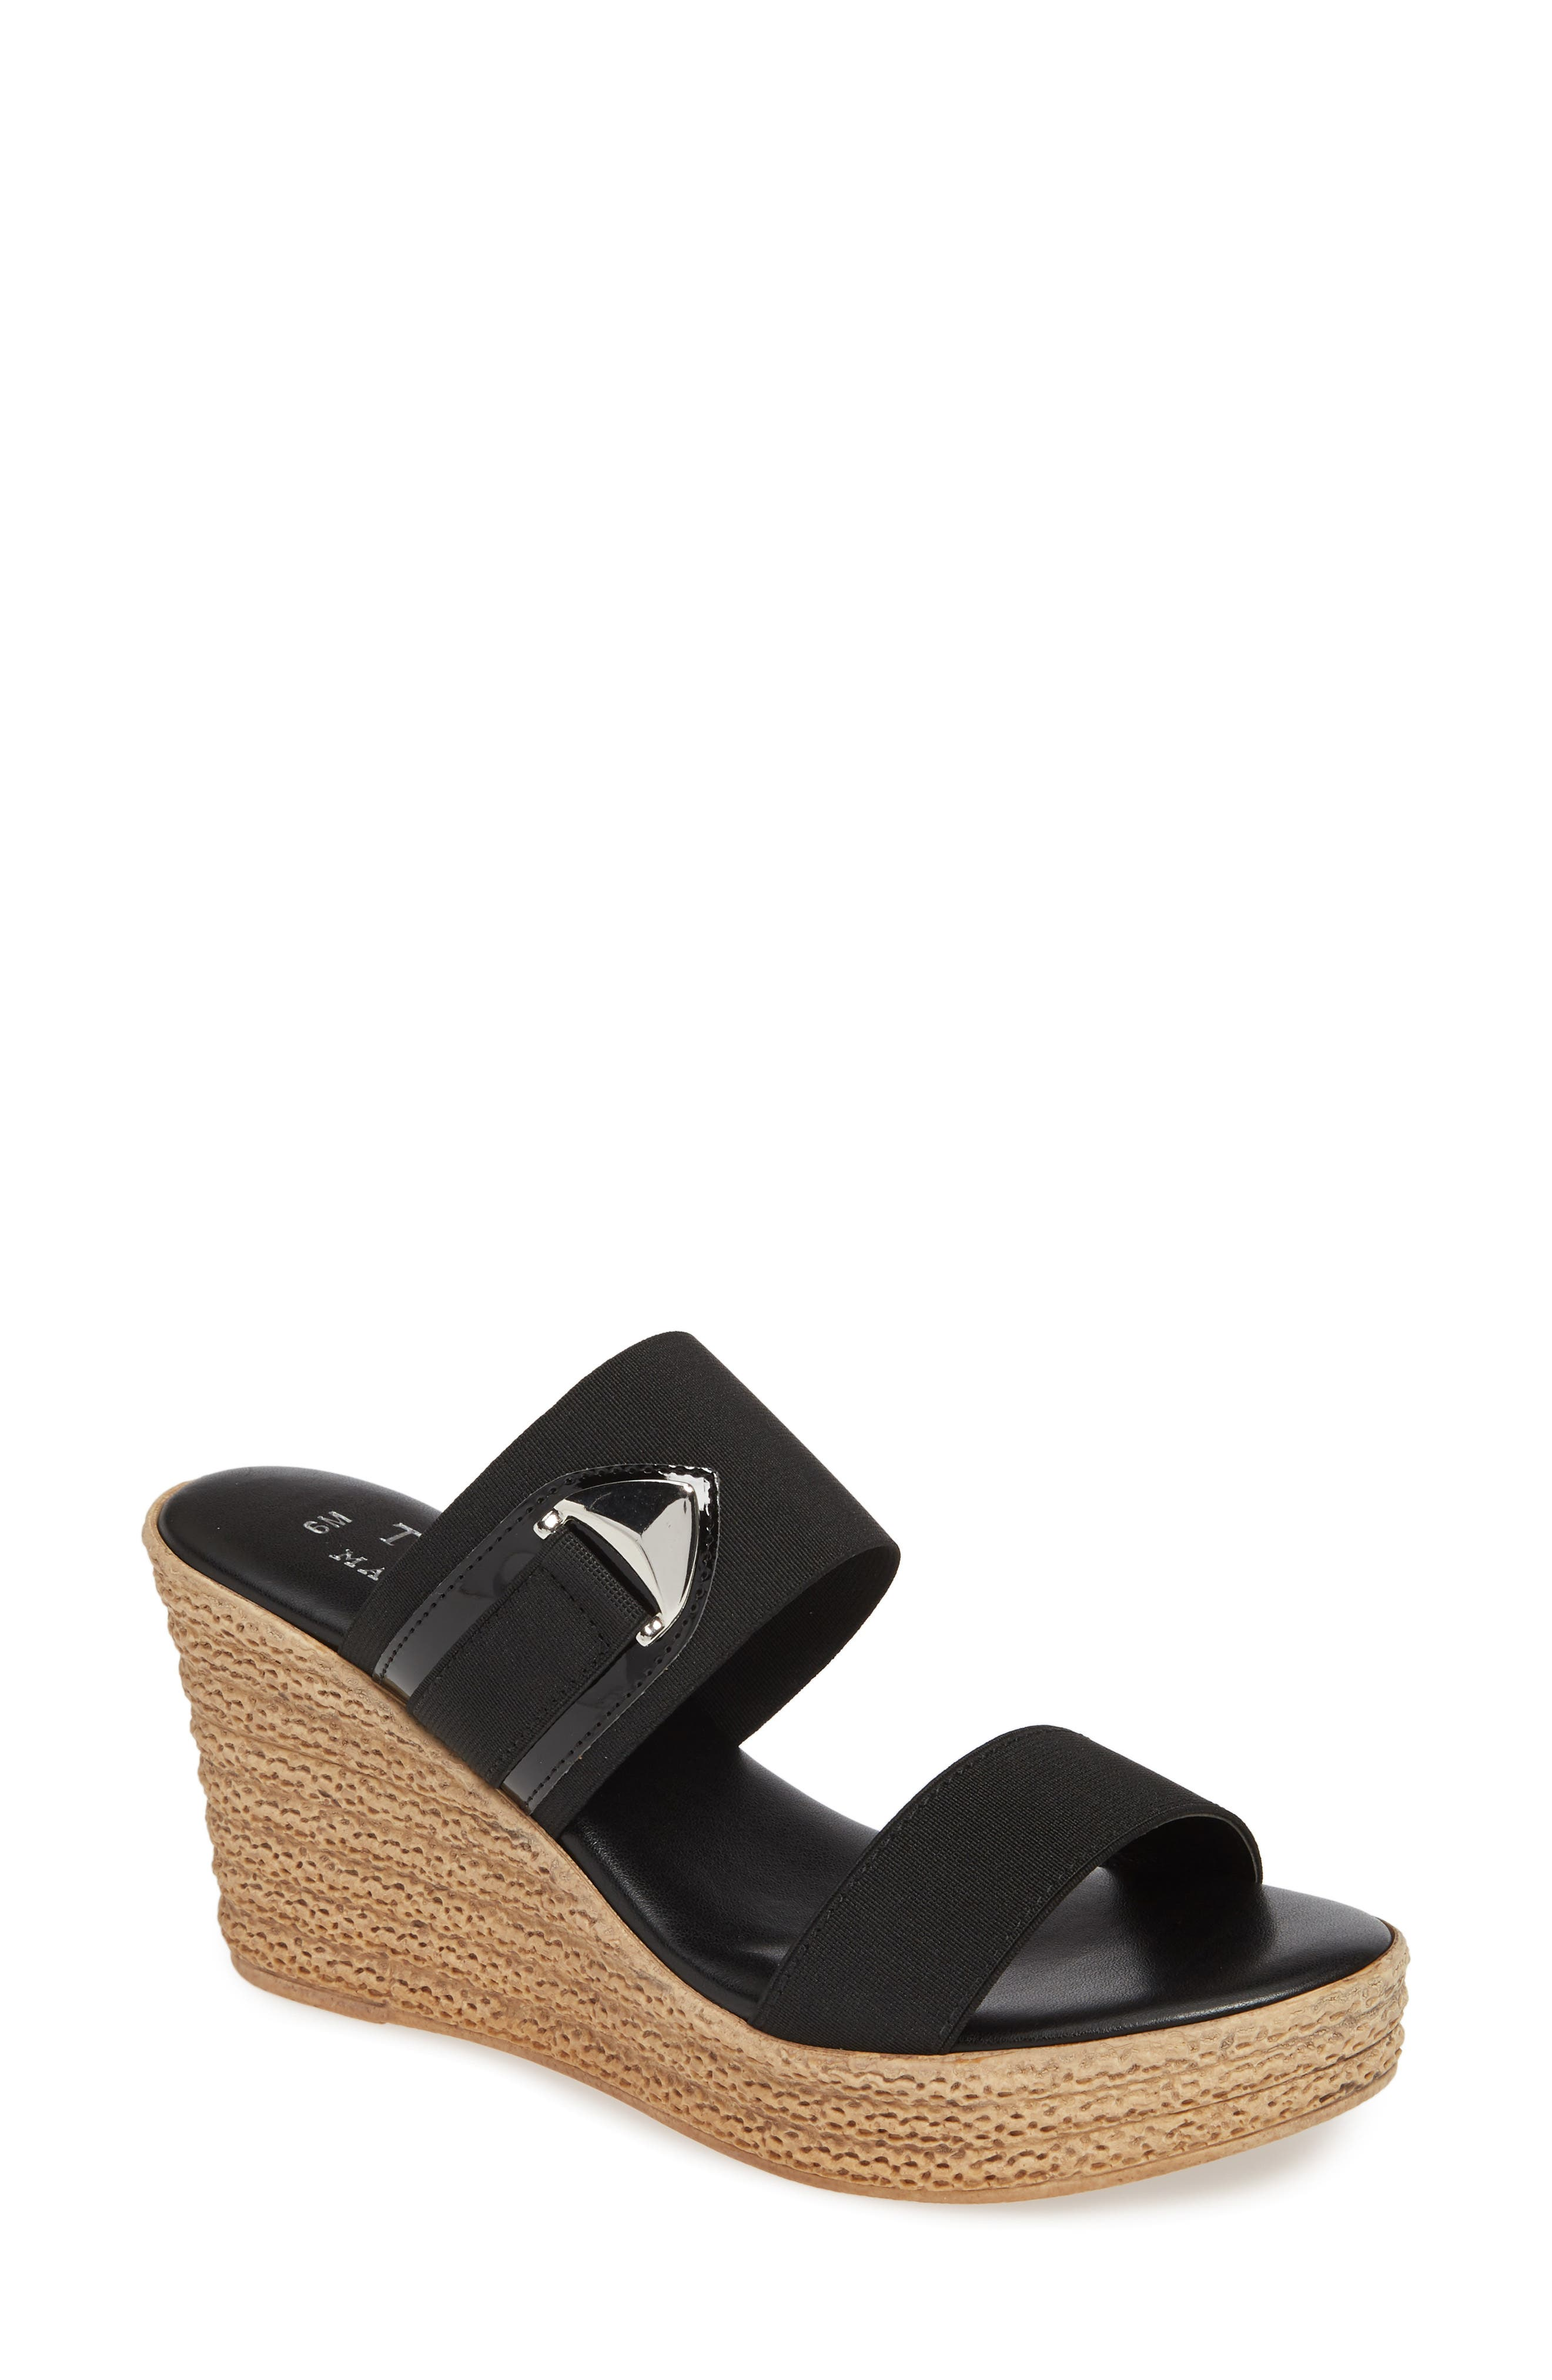 TUSCANY BY EASY STREET<SUP>®</SUP>, Marisole Platform Wedge Sandal, Main thumbnail 1, color, BLACK LEATHER